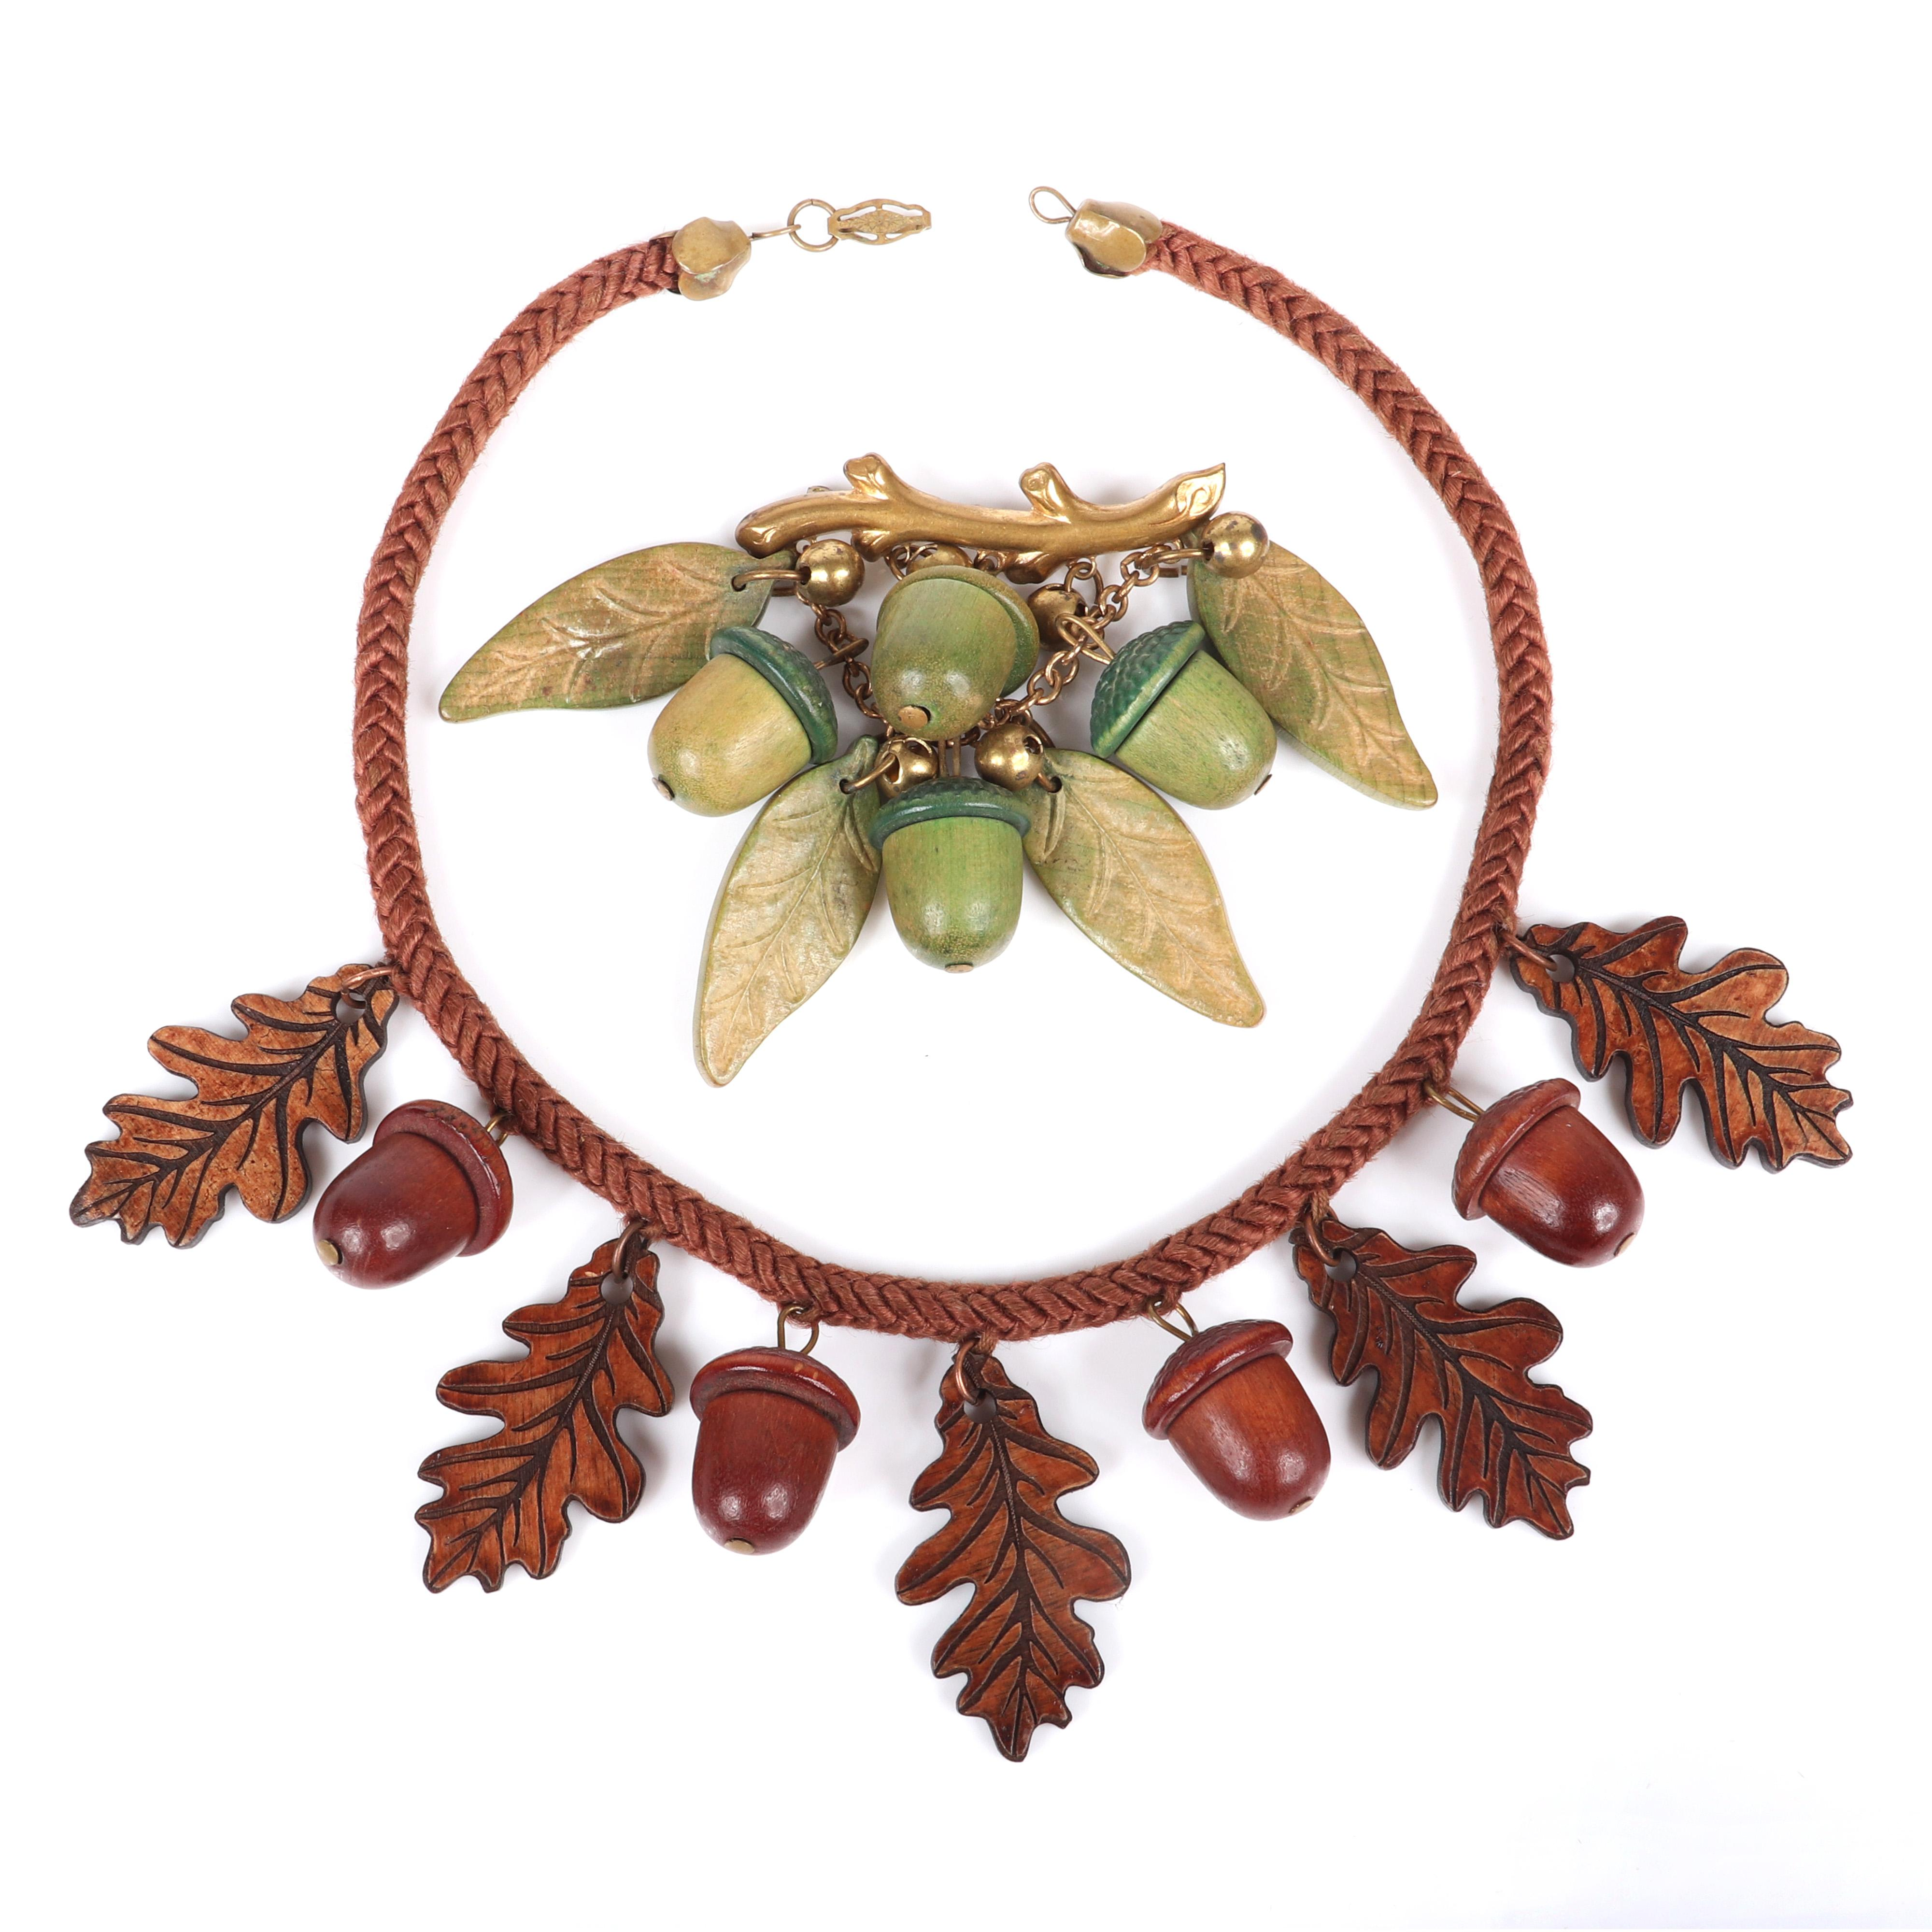 "Vintage carved wood jewelry group: cord necklace with brown stained oak leaf and acorn charms and gold tone pin brooch with metal beads and green stained acorns and leaf dangles. 14 1/2""L (necklace), 3""H x 2 1/2""W..."